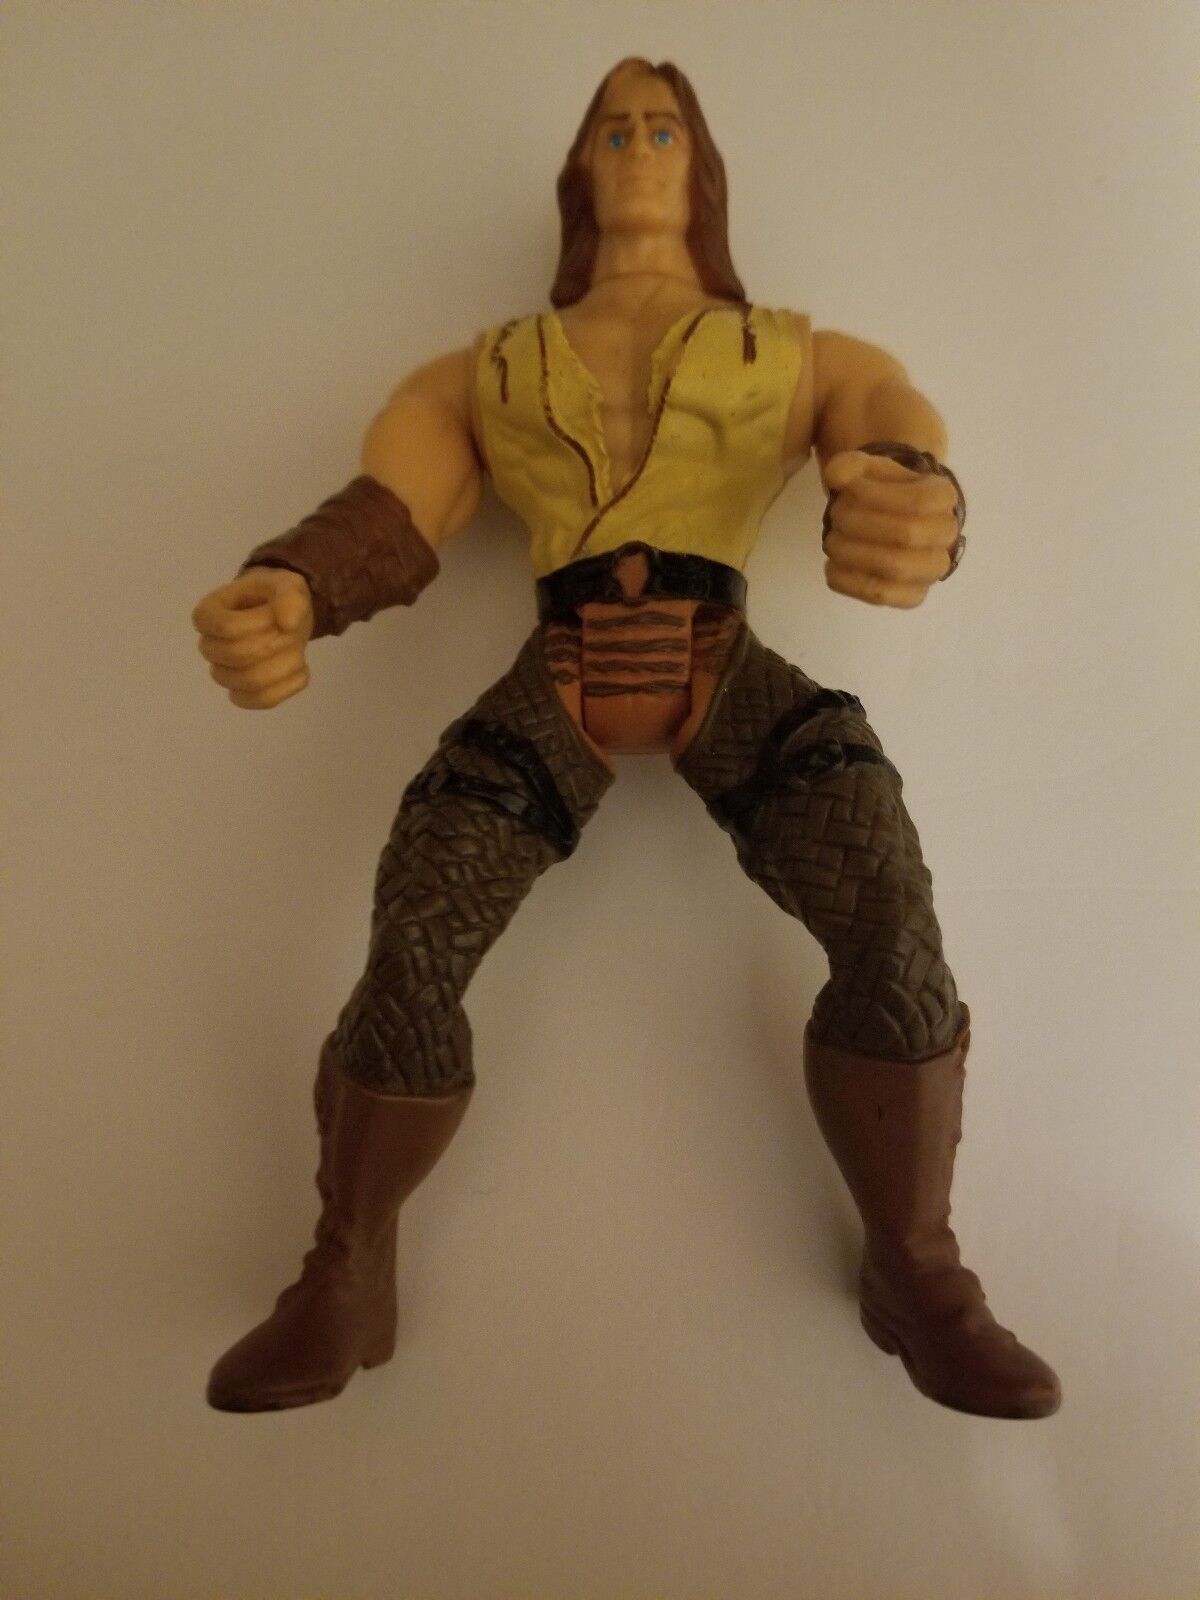 1996 Hercules The Legend Continues Action Figurine